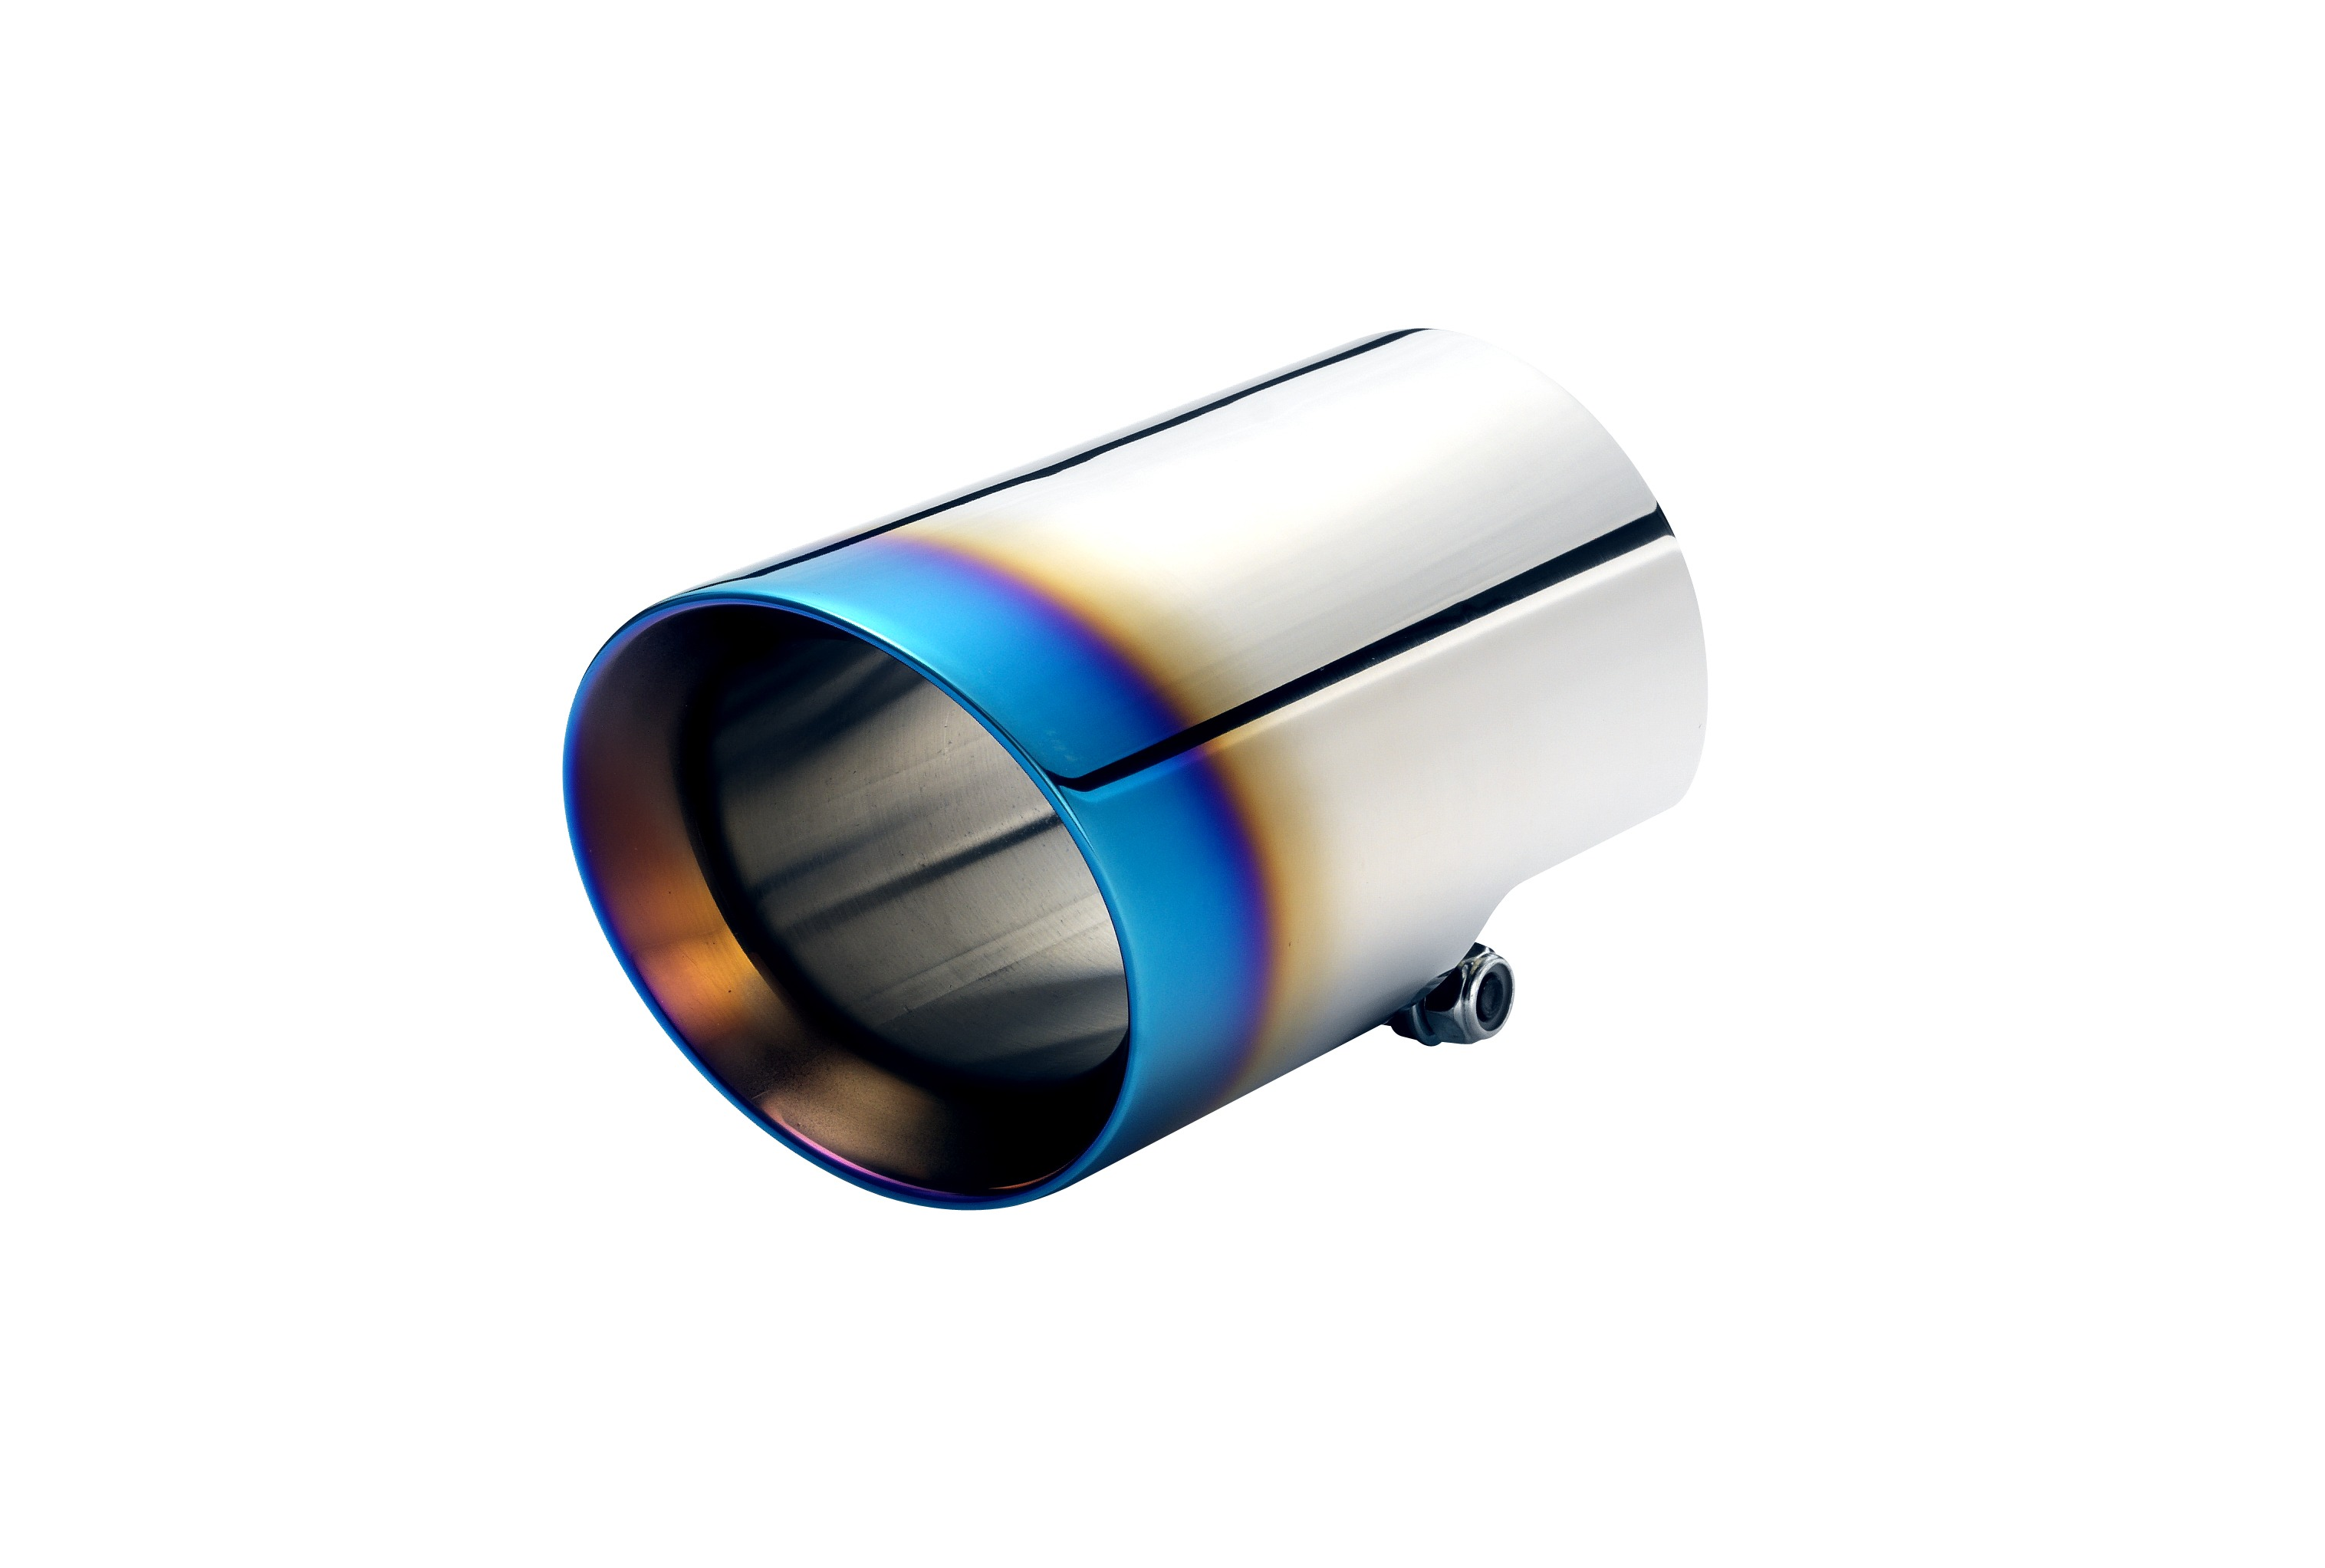 Automobile Tail Pipe for Exhaust Systems made by LUCRE STAR INDUSTRY CO., LTD. 星卦企業股份有限公司 - MatchSupplier.com